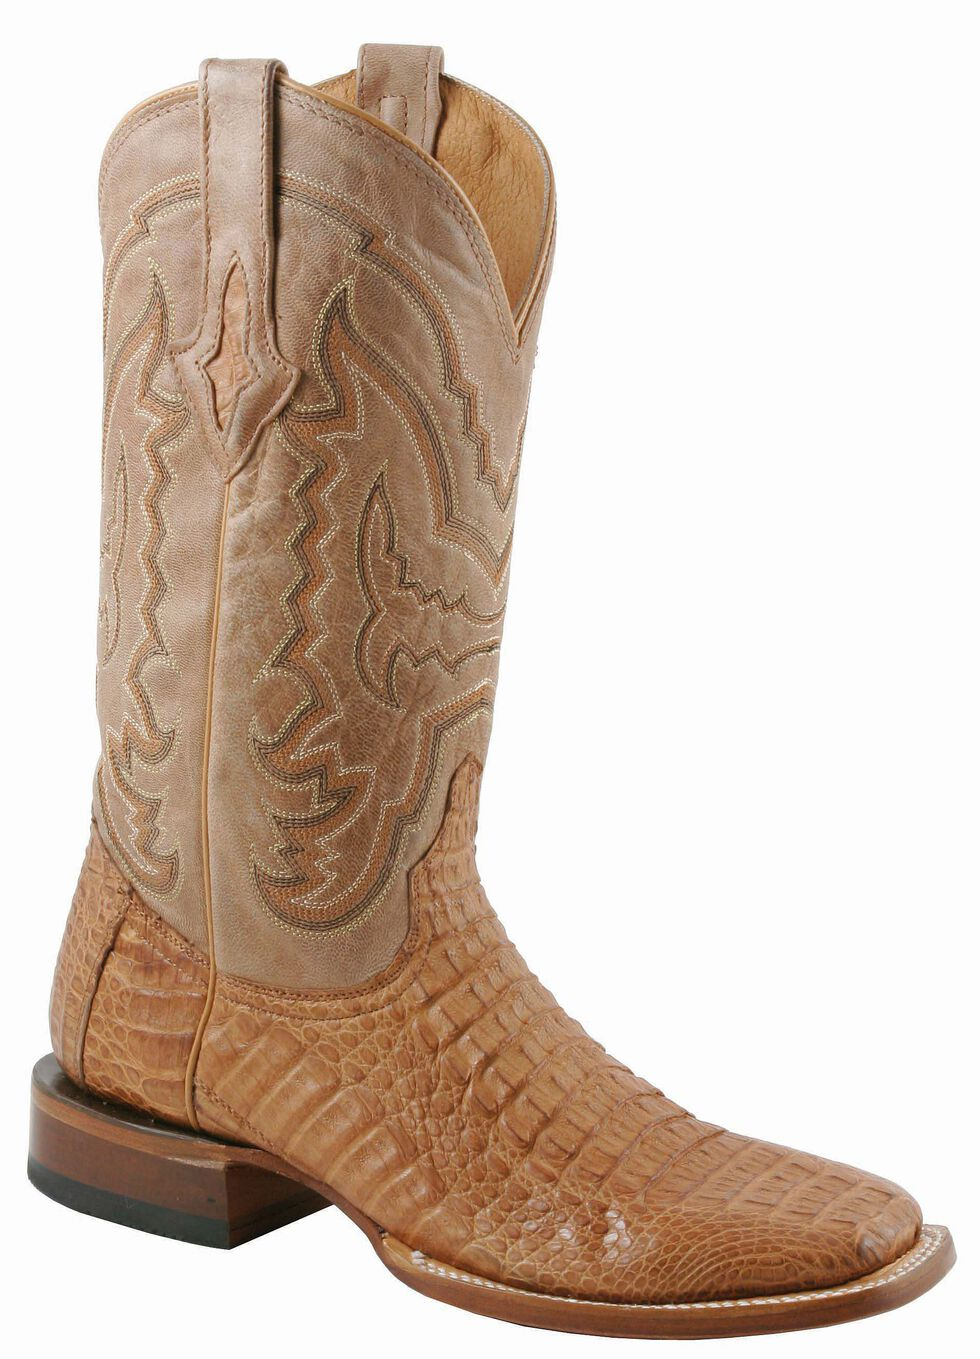 Lucchese Handcrafted 1883 Hornback Caiman Cowboy Boots - Square Toe, Tan, hi-res